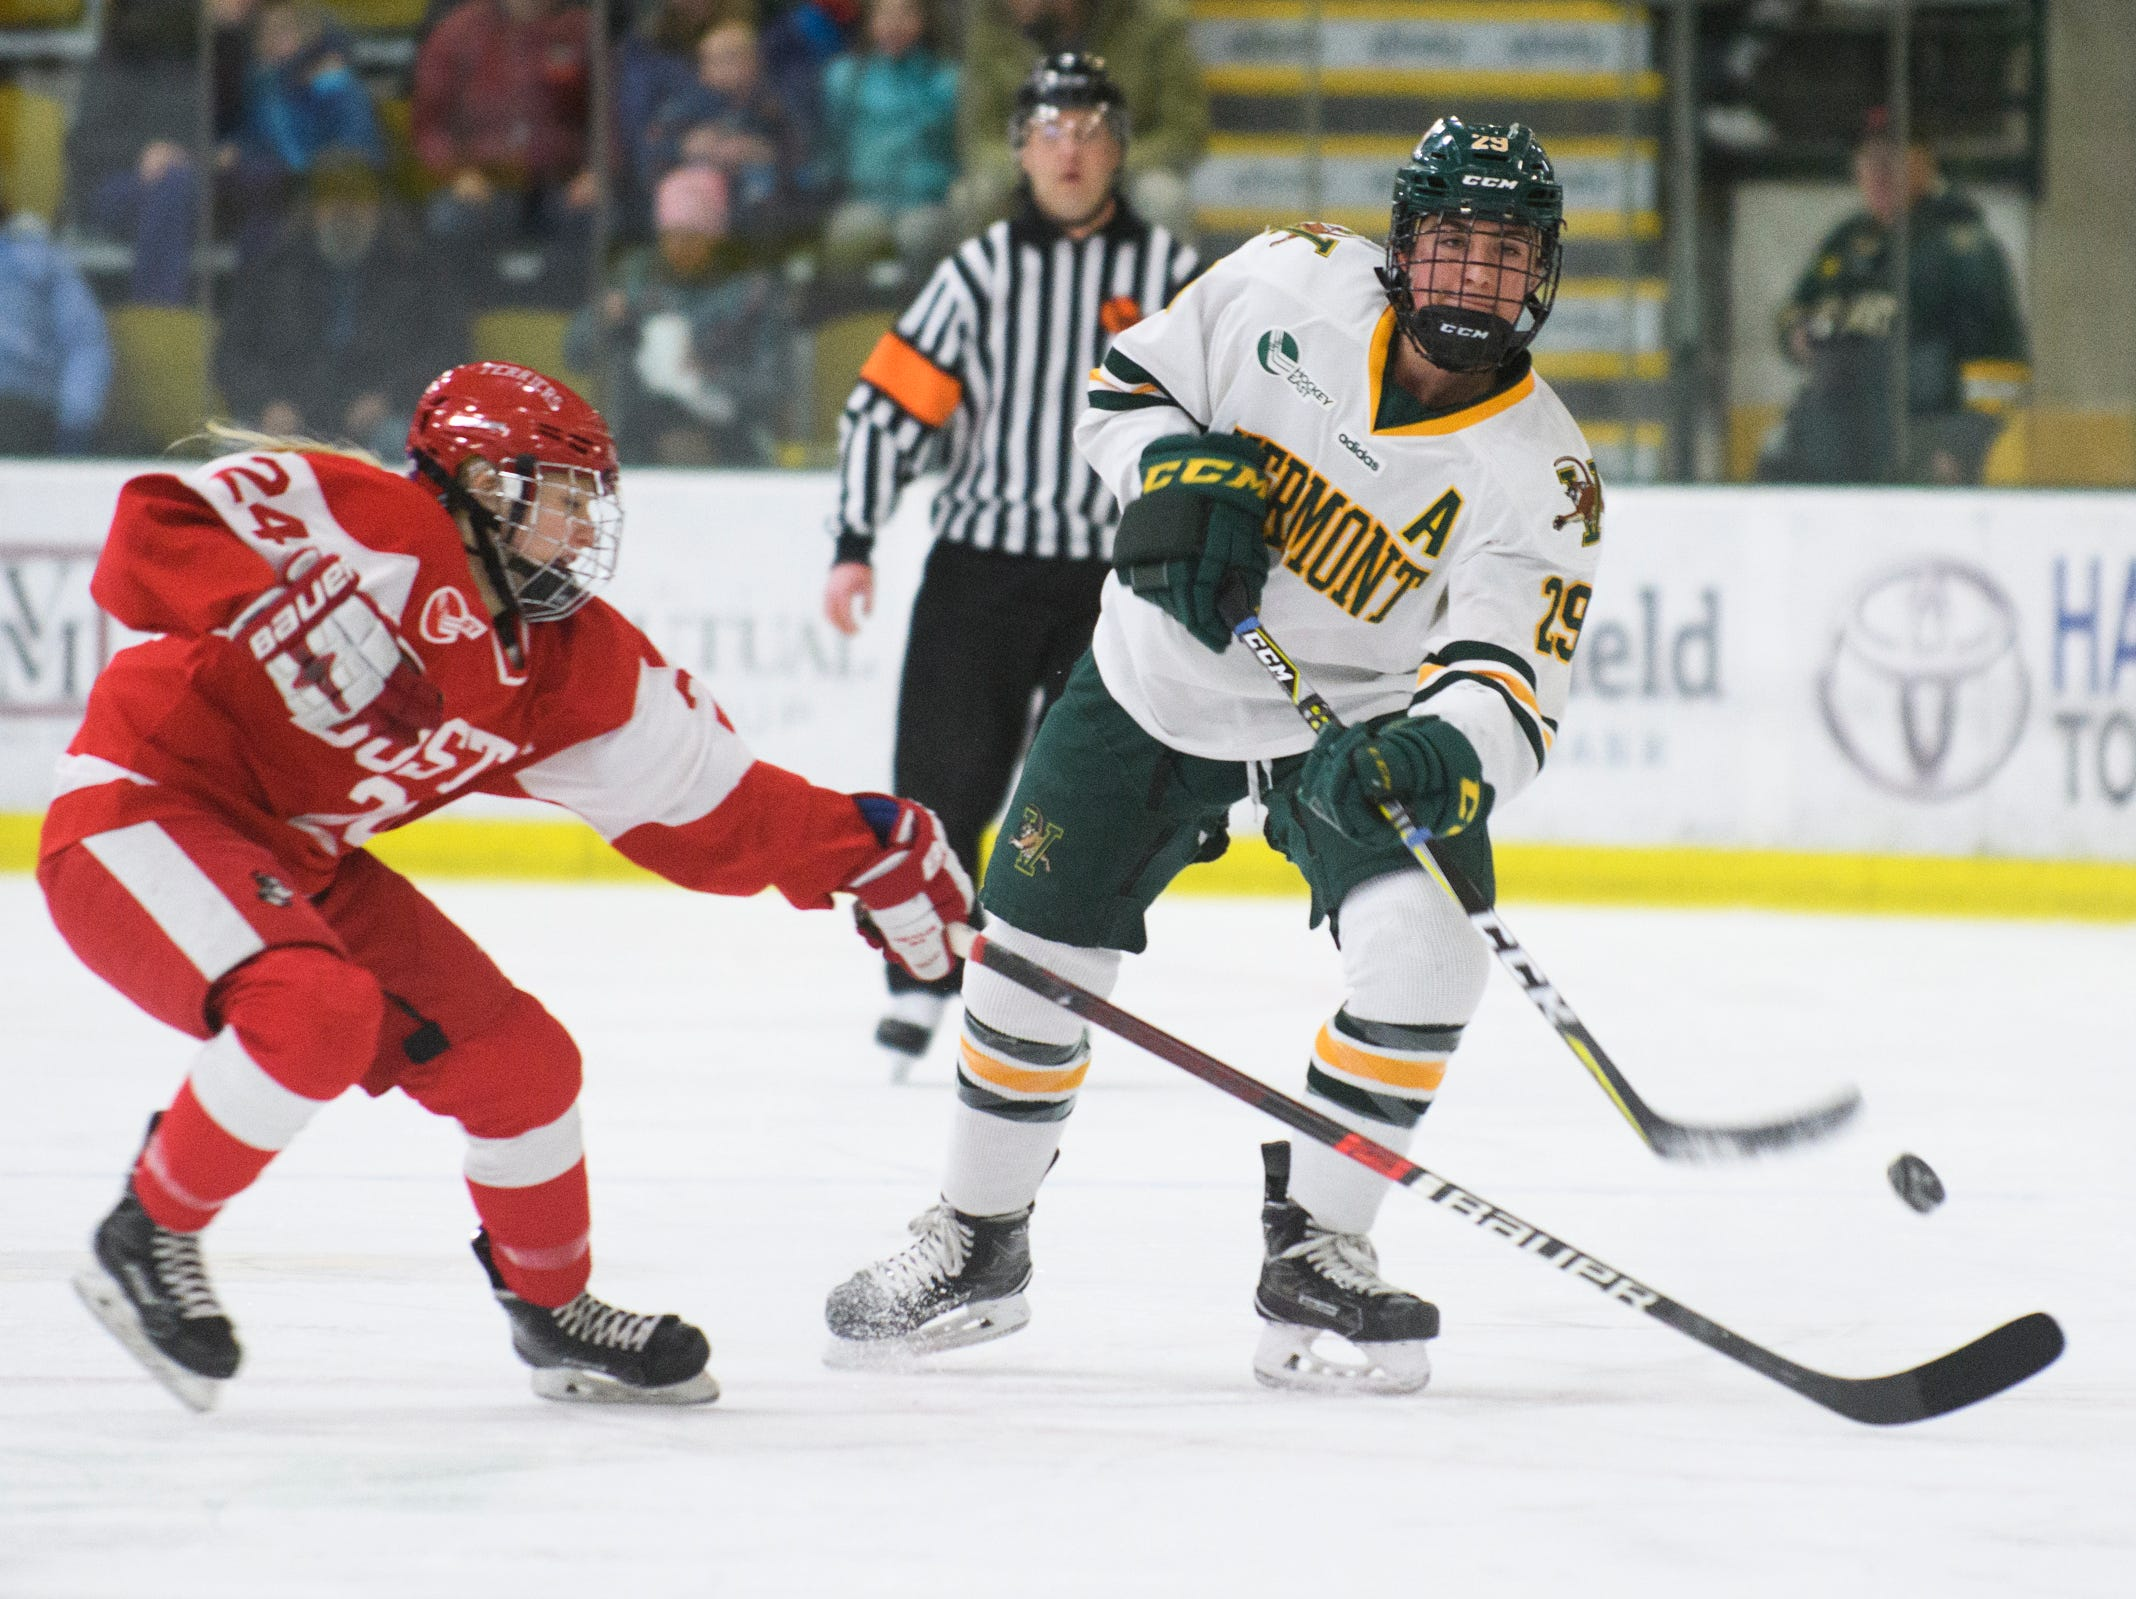 Vermont's Taylor Flaherty (29) dumps the puck into the zone past Boston's Mary Grace Kelley (24) during the women's hockey game between the Boston Terriers and the Vermont Catamounts at Gutterson Field House on Friday night February 1, 2019 in Burlington, Vermont.